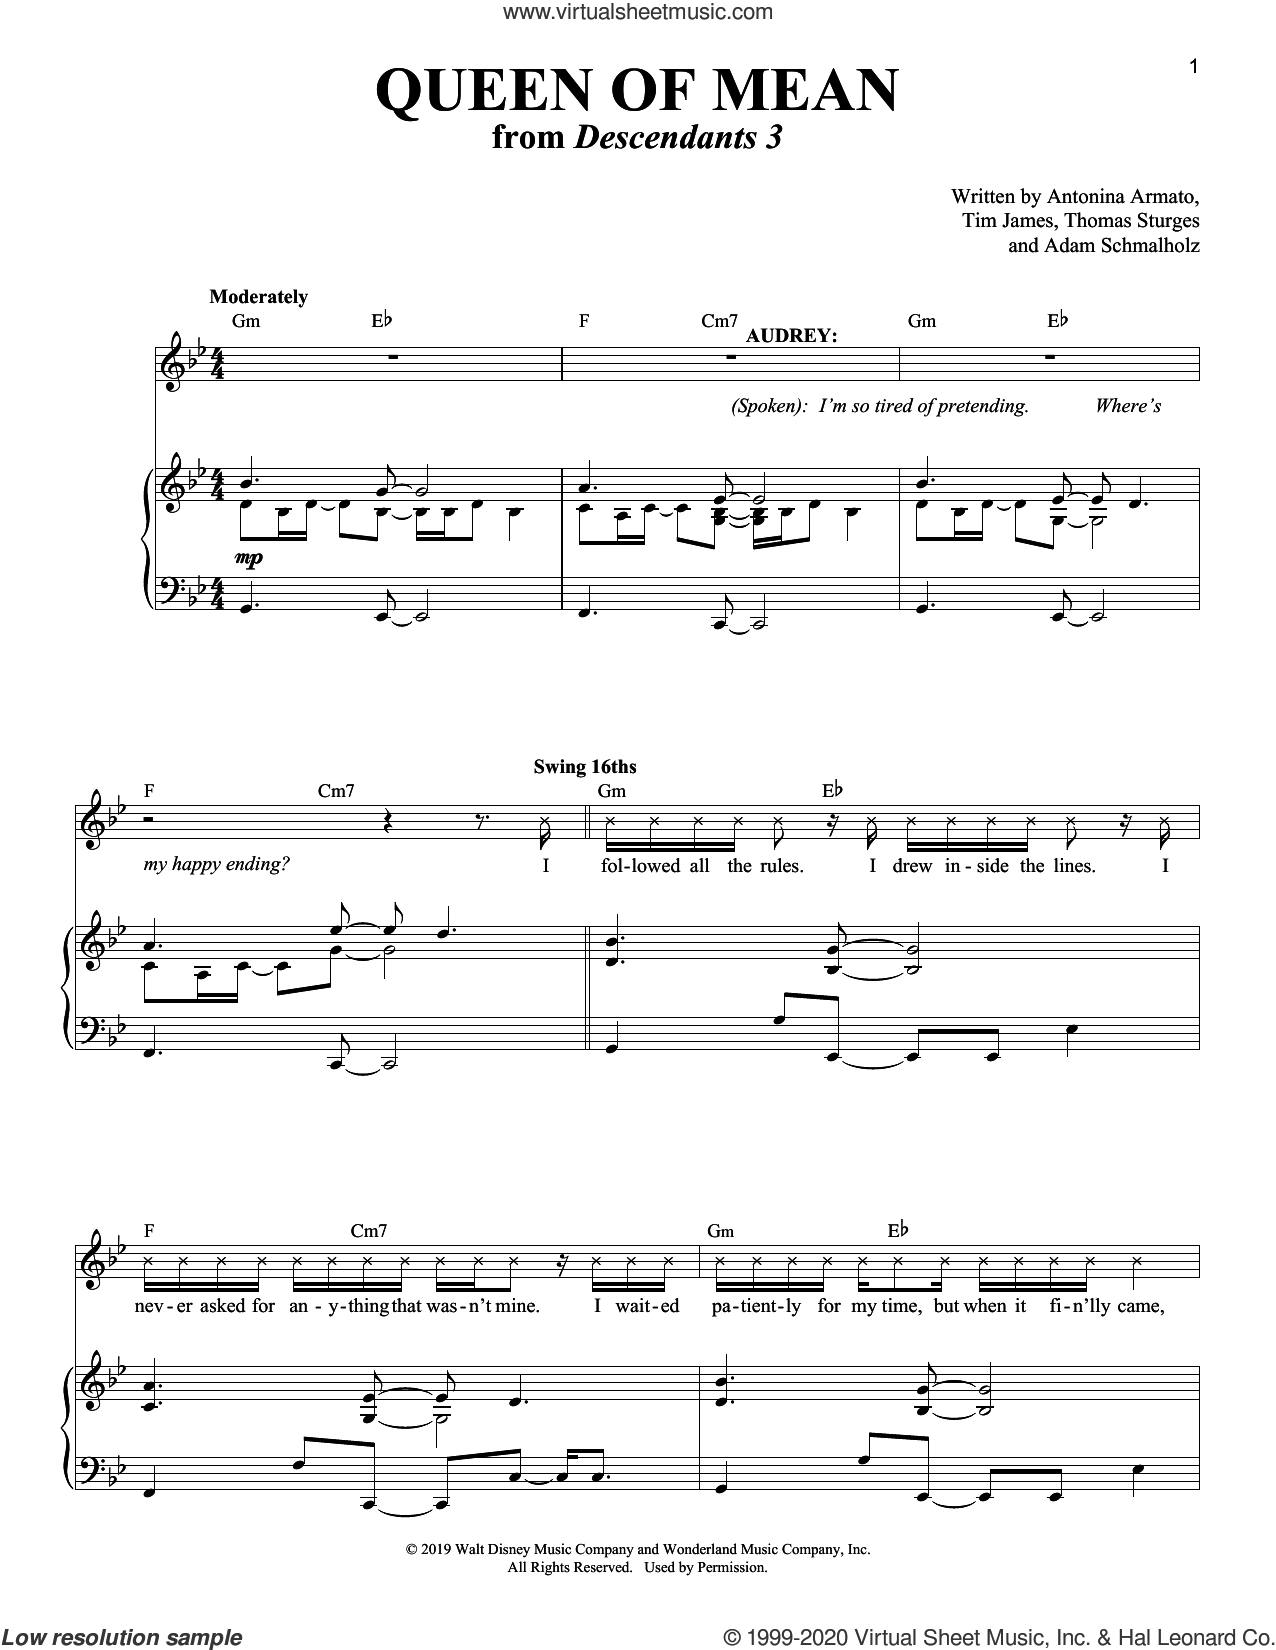 Queen Of Mean (from Disney's Descendants 3) sheet music for voice and piano by Sarah Jeffery, Adam Schmalholz, Antonina Armato, Thomas Sturges and Tim James, intermediate skill level